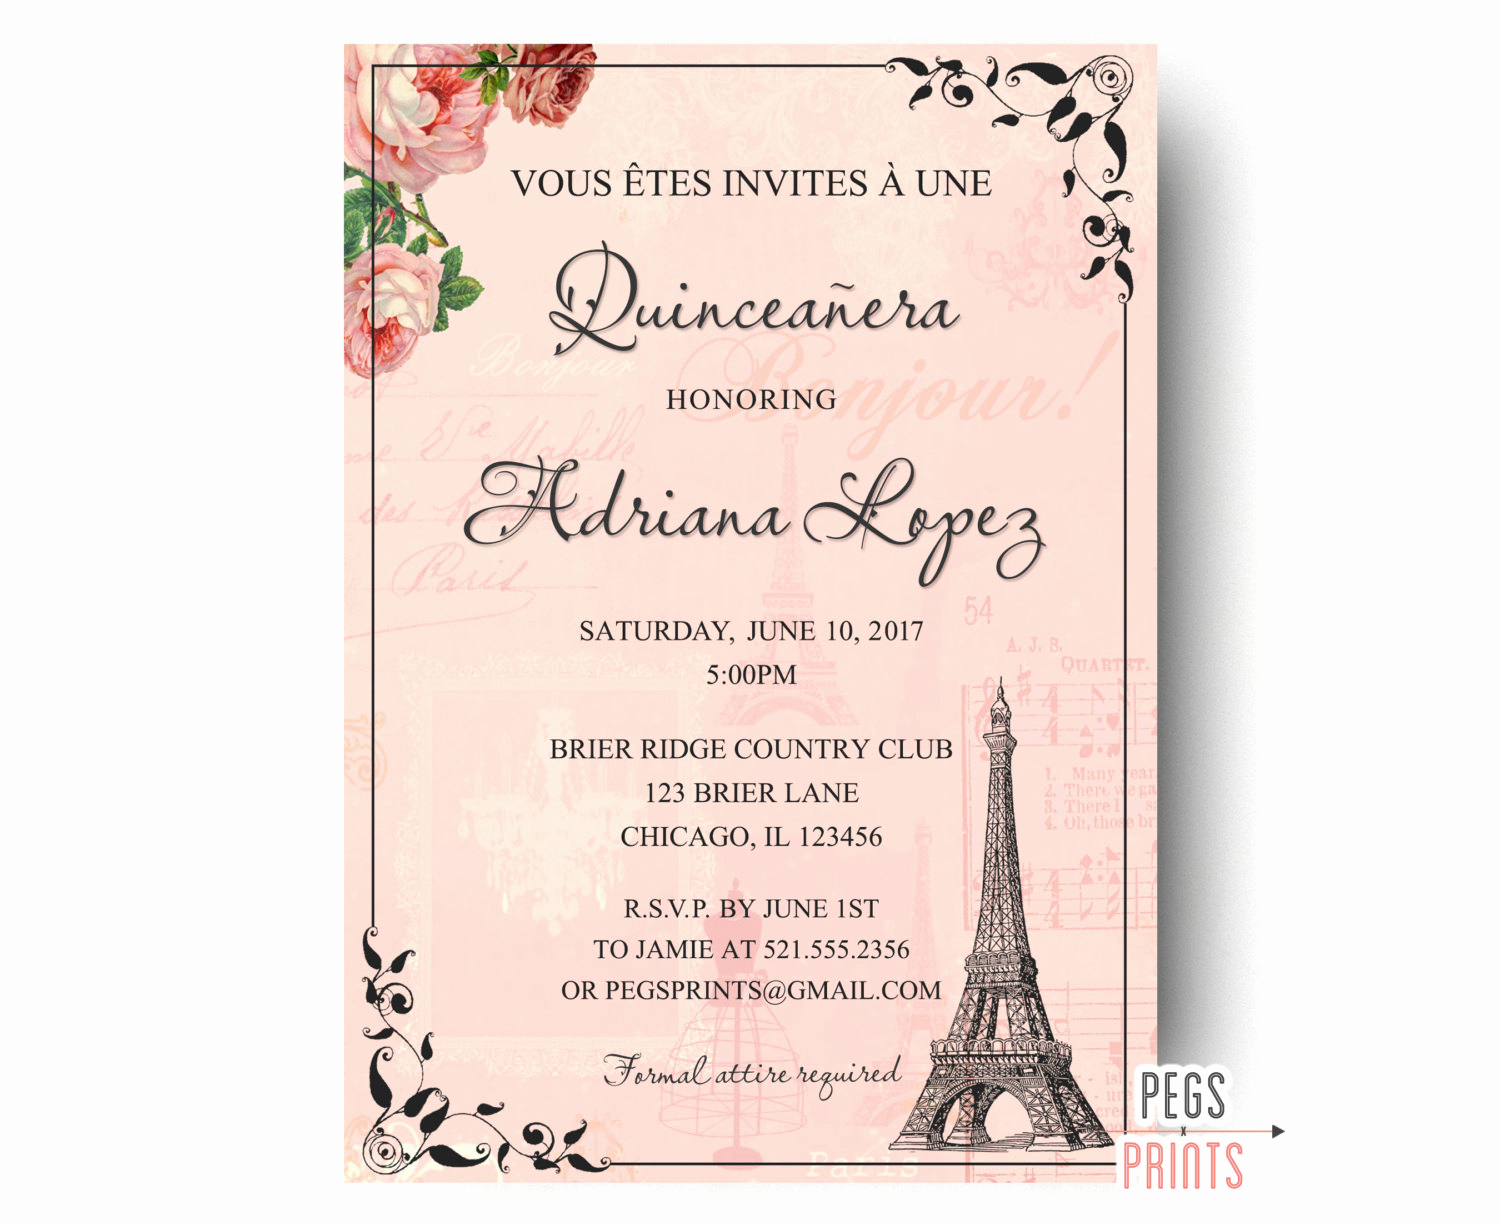 Spanish Quinceanera Invitation Wording Unique Paris Quinceanera Invitation Quinceanera Invitation